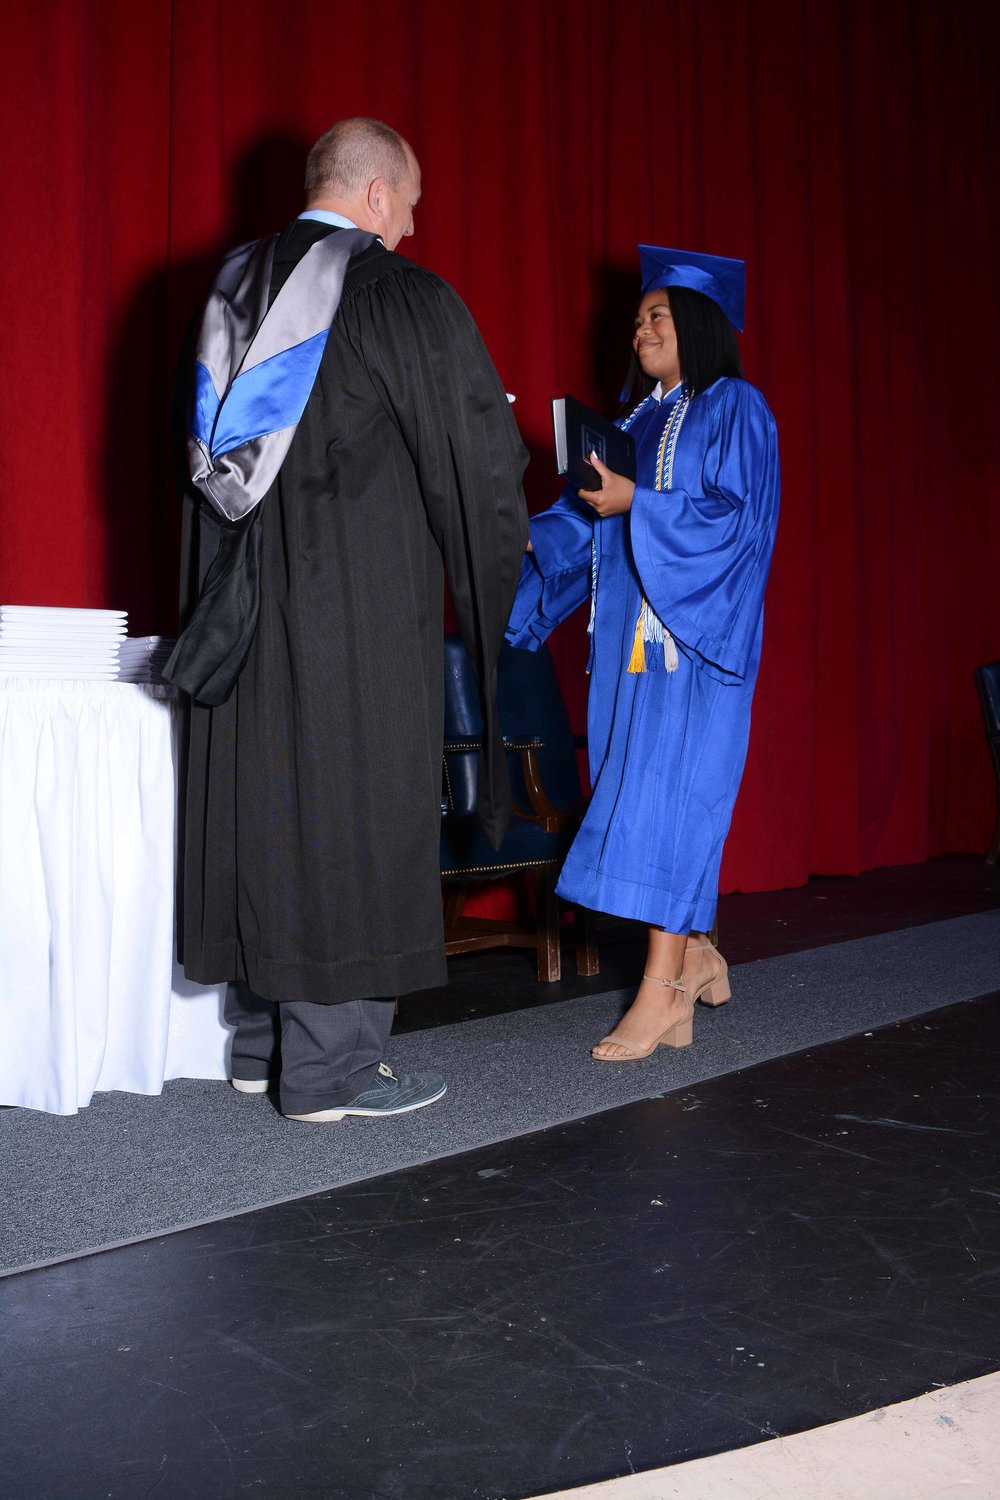 May14 Commencement78.jpg